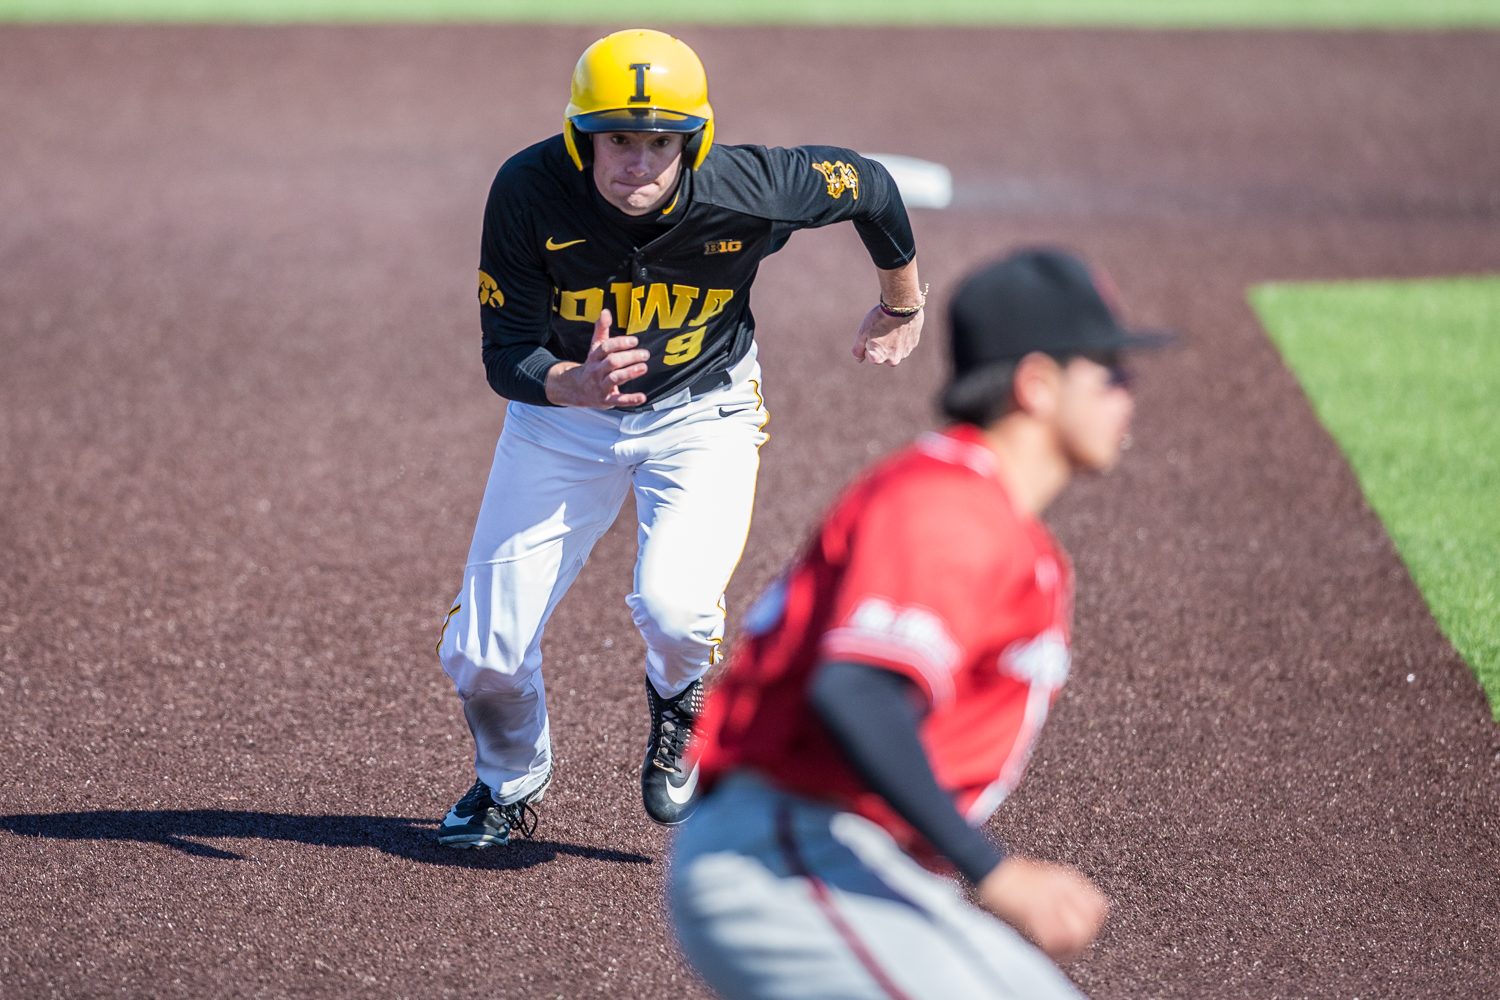 Iowa+outfielder+Ben+Norman+steals+third+base+during+the+first+game+of+a+baseball+doubleheader+between+Iowa+and+Cal-State+Northridge+at+Duane+Banks+Field+on+Sunday%2C+March+17%2C+2019.+The+Hawkeyes+defeated+the+Matadors%2C+5-4.